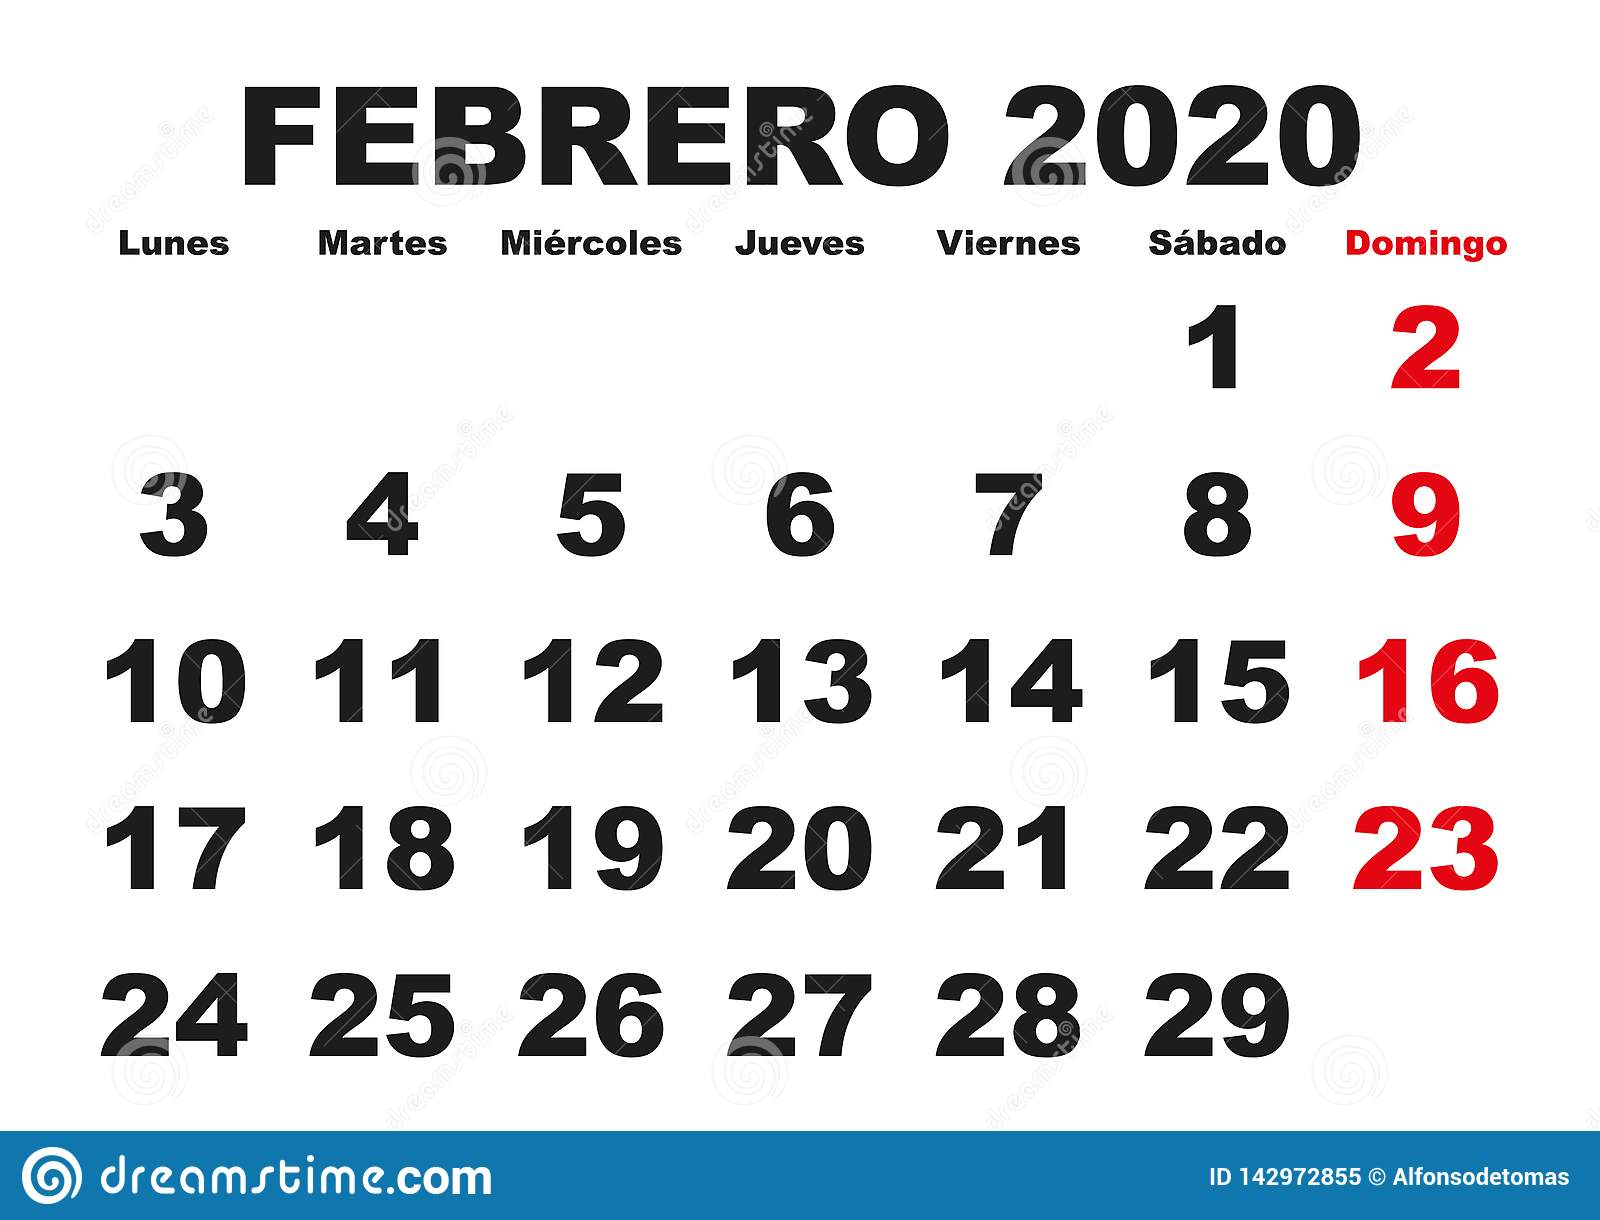 February 2020 Spanish Calendar Febrero 2020 Wall Calendar Spanish Stock Vector   Illustration of